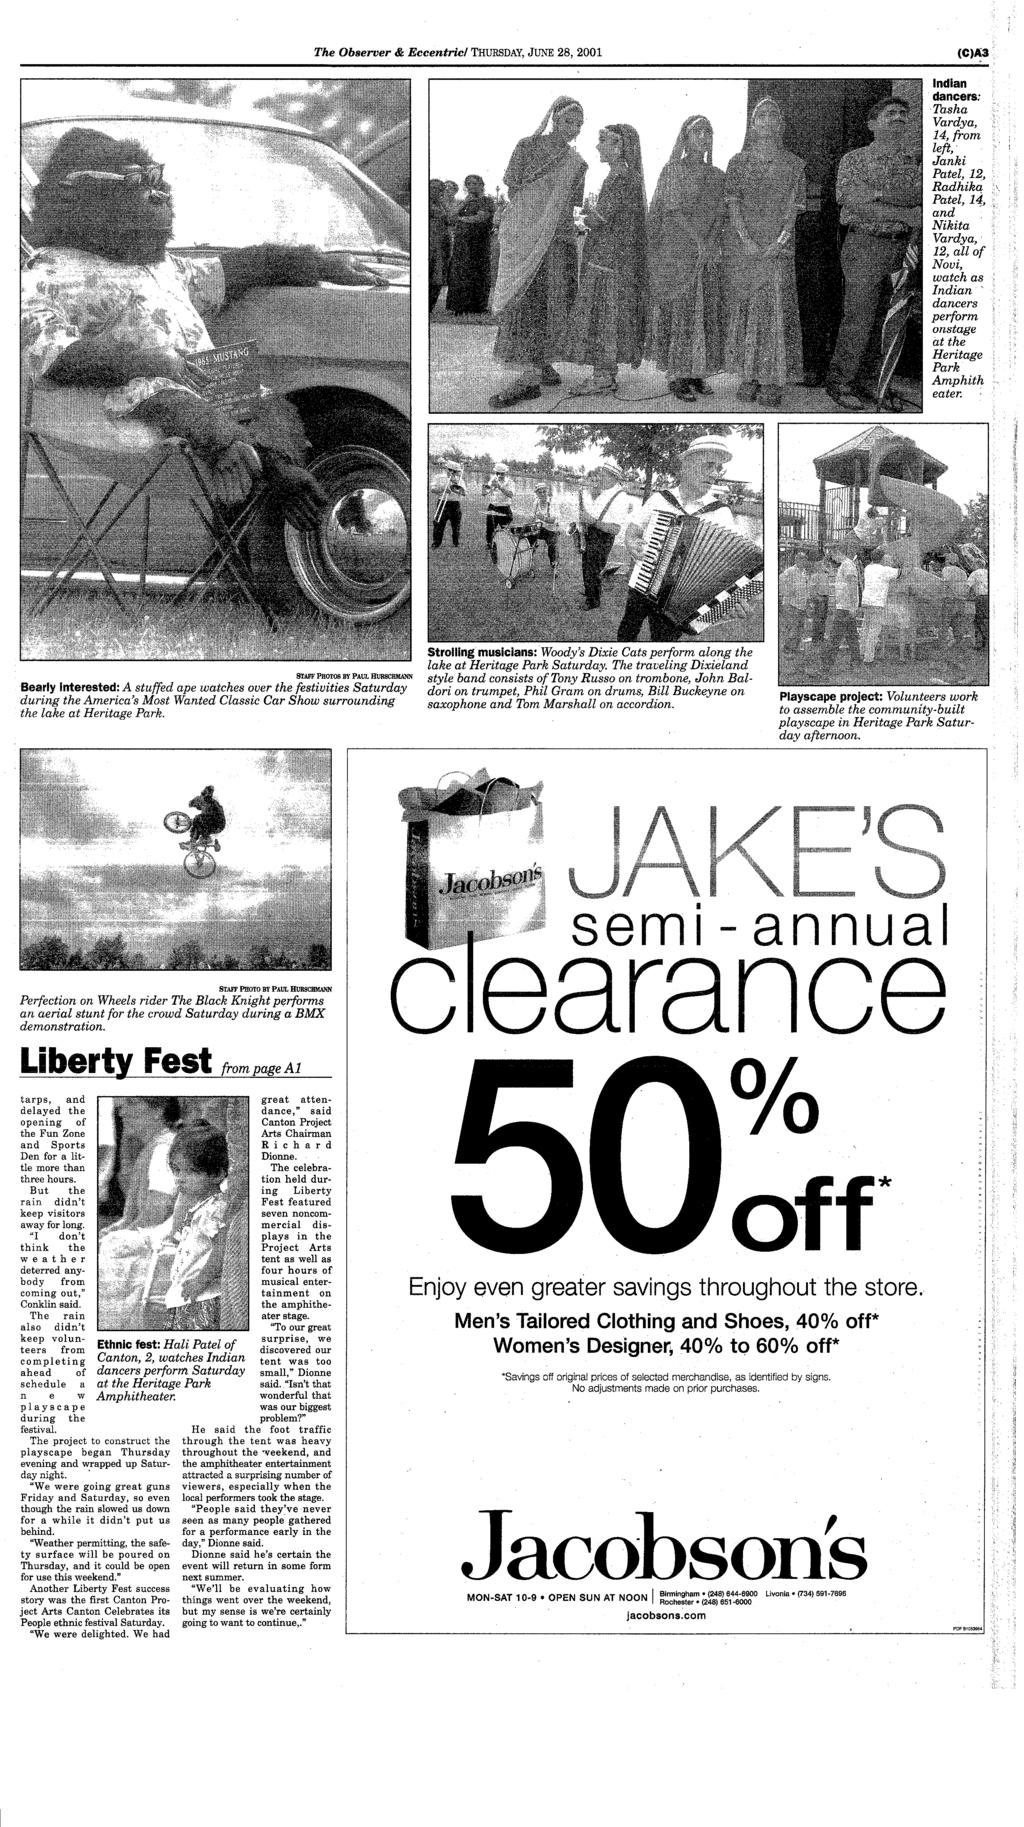 Canton dbsmrc your hometown newspaper serving canton for 26 years pdf the observer eccentric thursday june 28 2001 ca3 indian fandeluxe Images